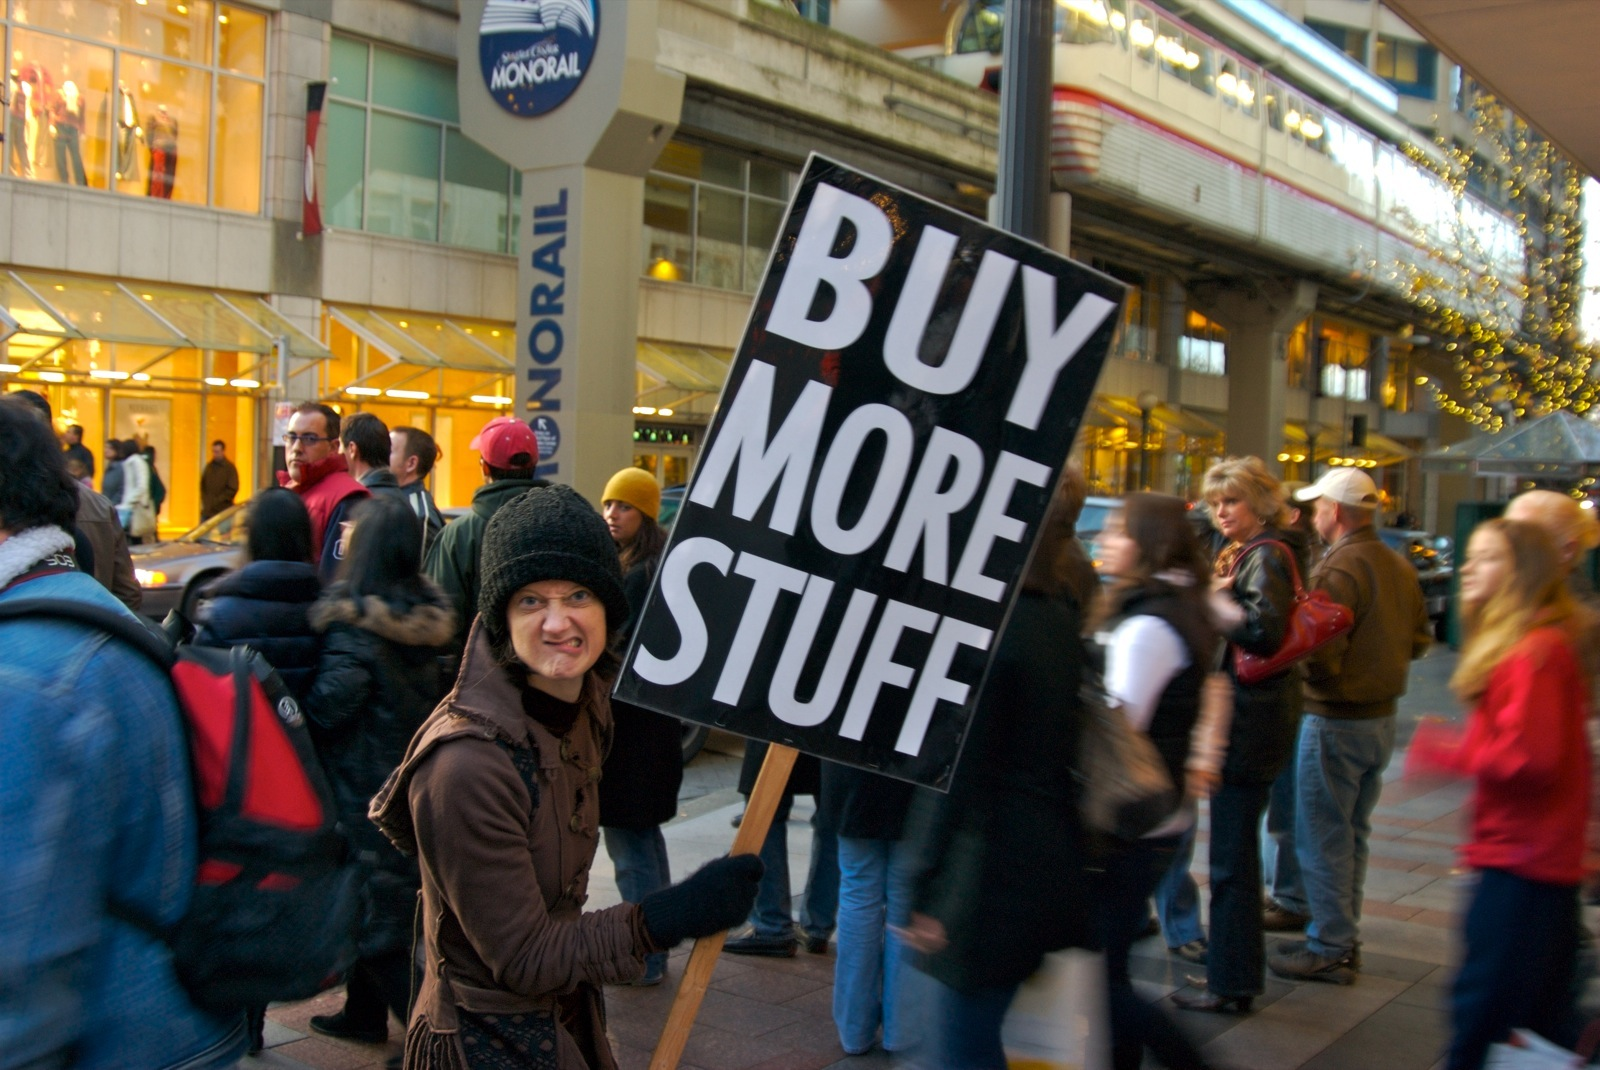 Buy More Stuff on Friday, November 23rd, the day after Thanksgiving...also known as Black Friday